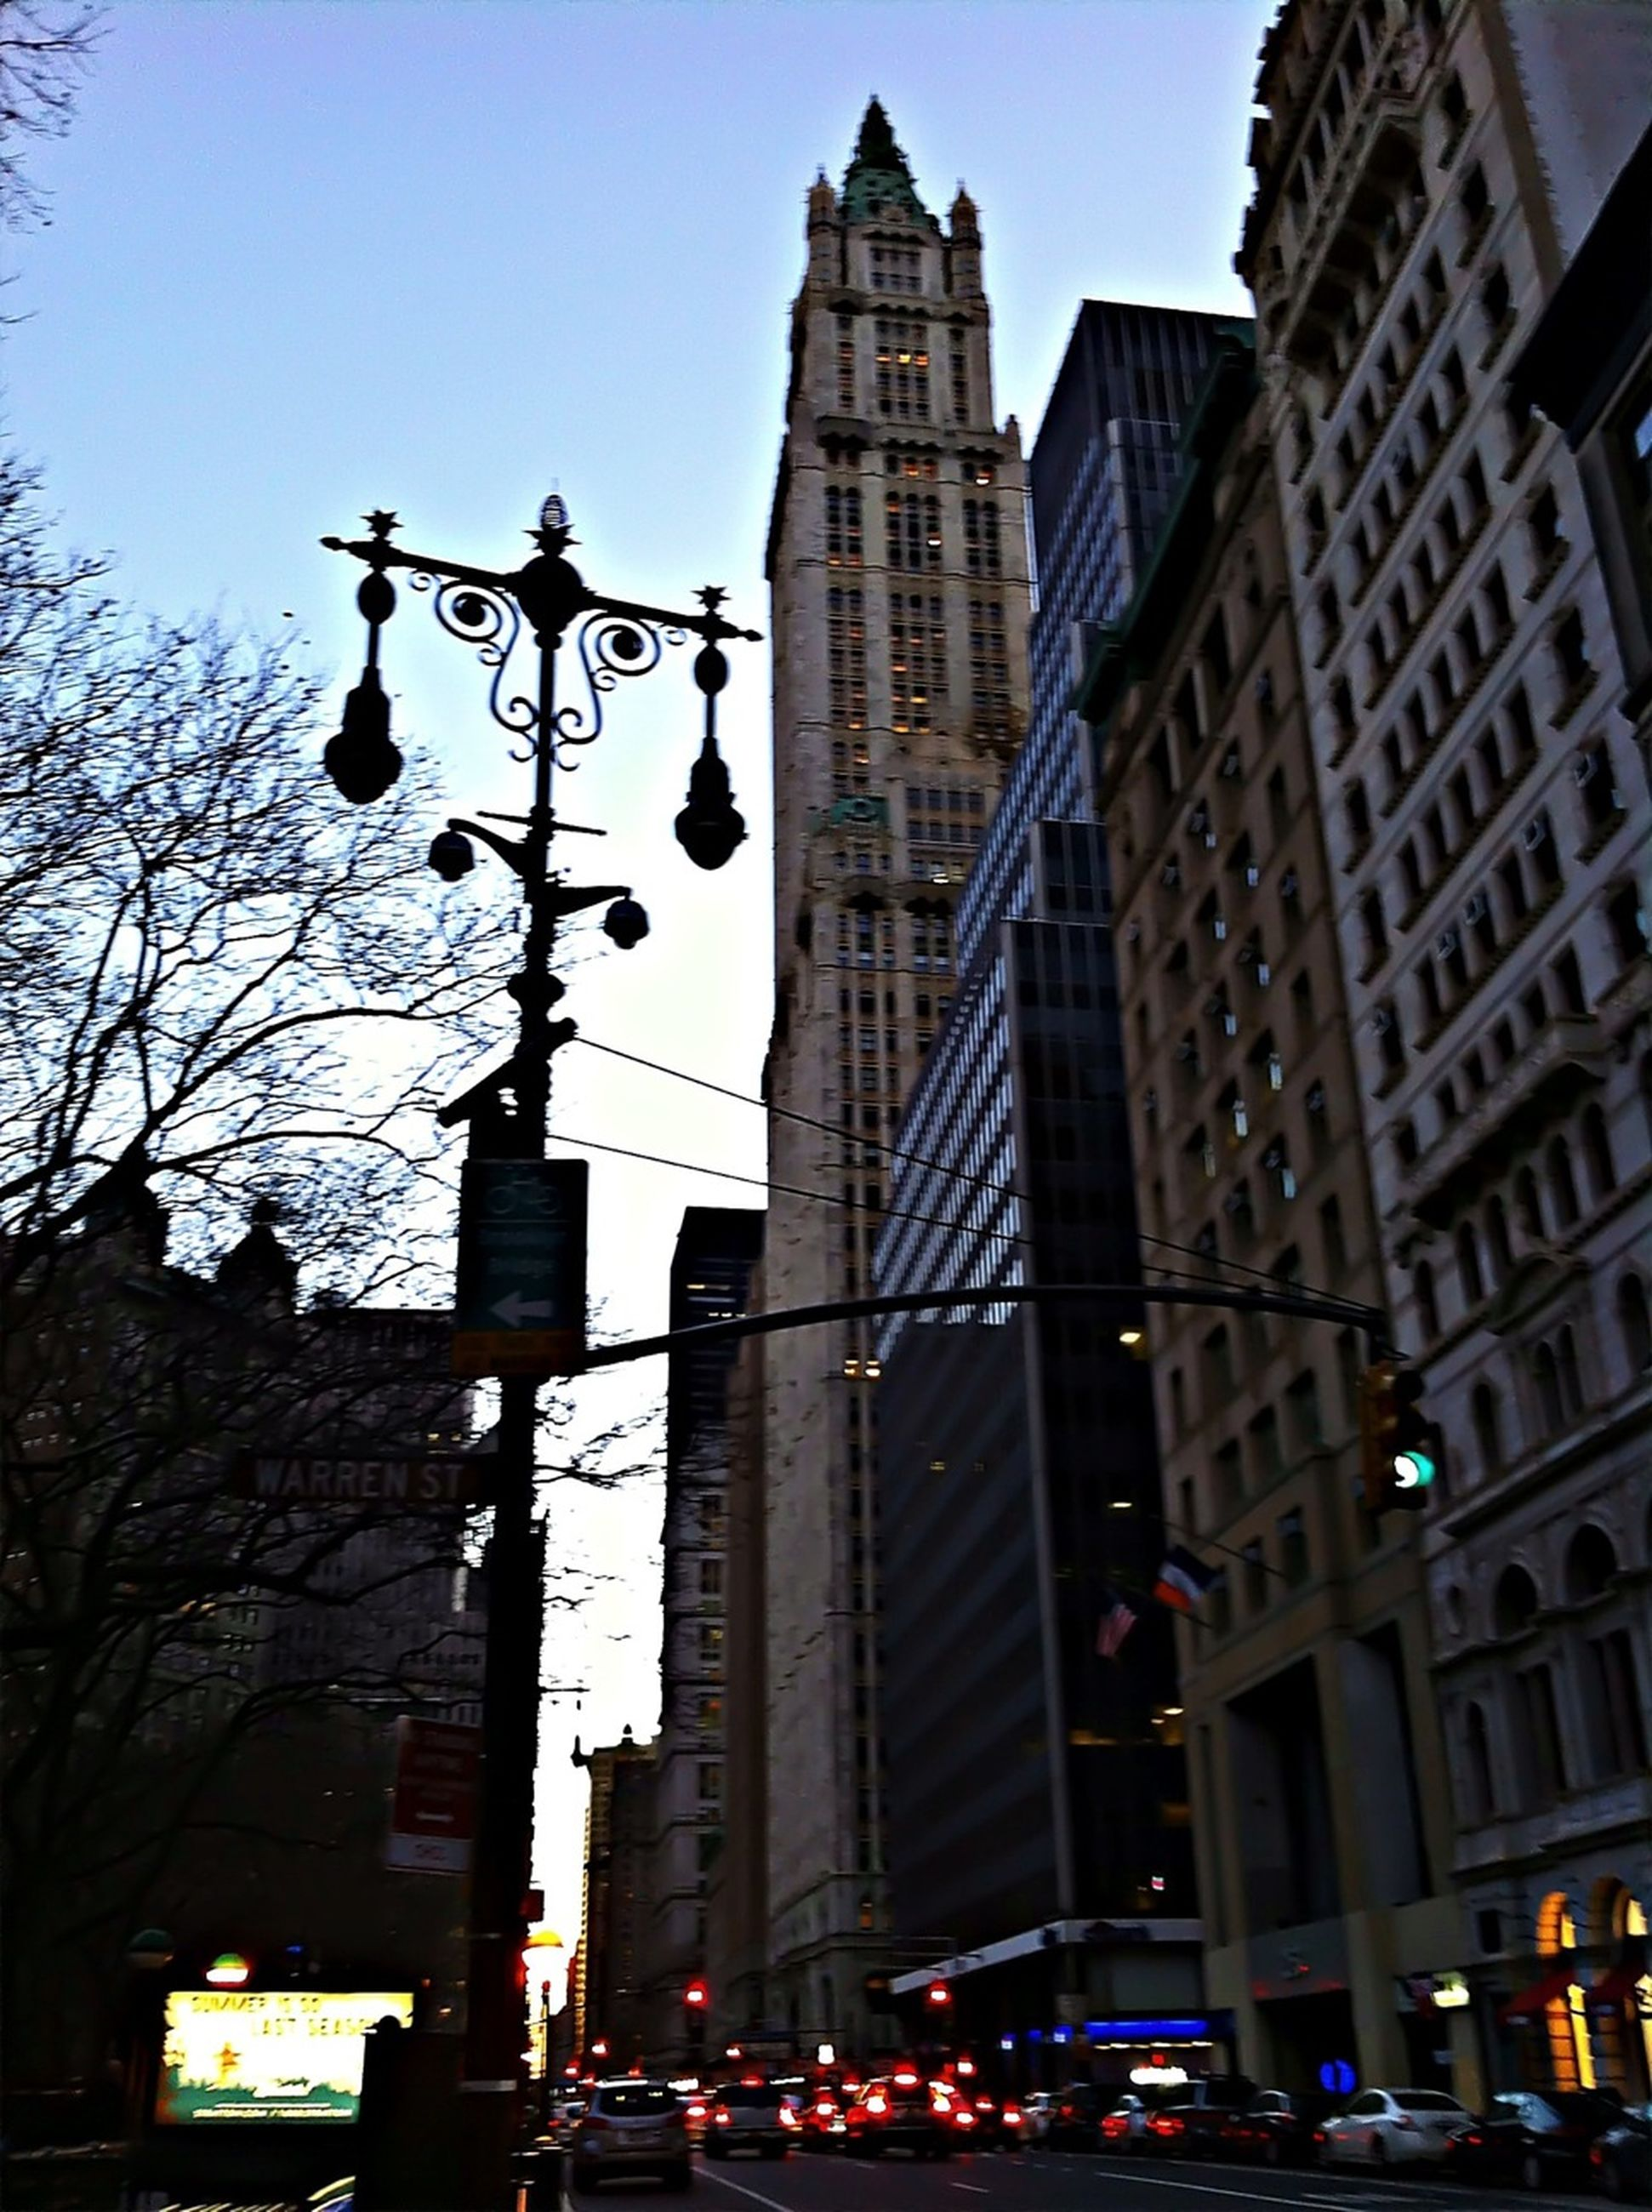 building exterior, architecture, built structure, city, low angle view, car, street, skyscraper, city life, land vehicle, tall - high, street light, transportation, office building, tower, building, city street, road signal, clear sky, mode of transport